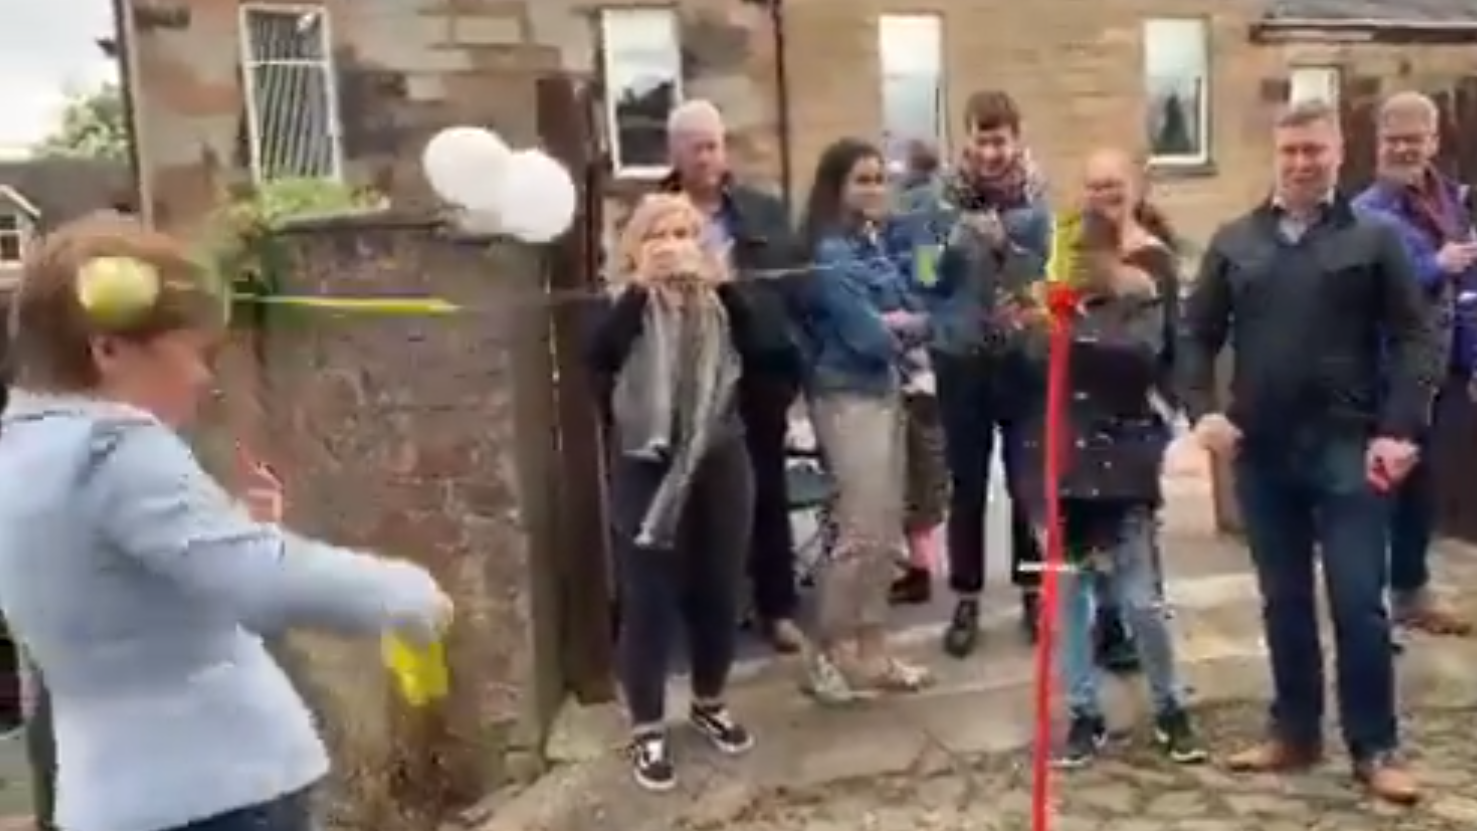 Nicola Sturgeon: First Minister hit on head by tennis ball during game of swingball